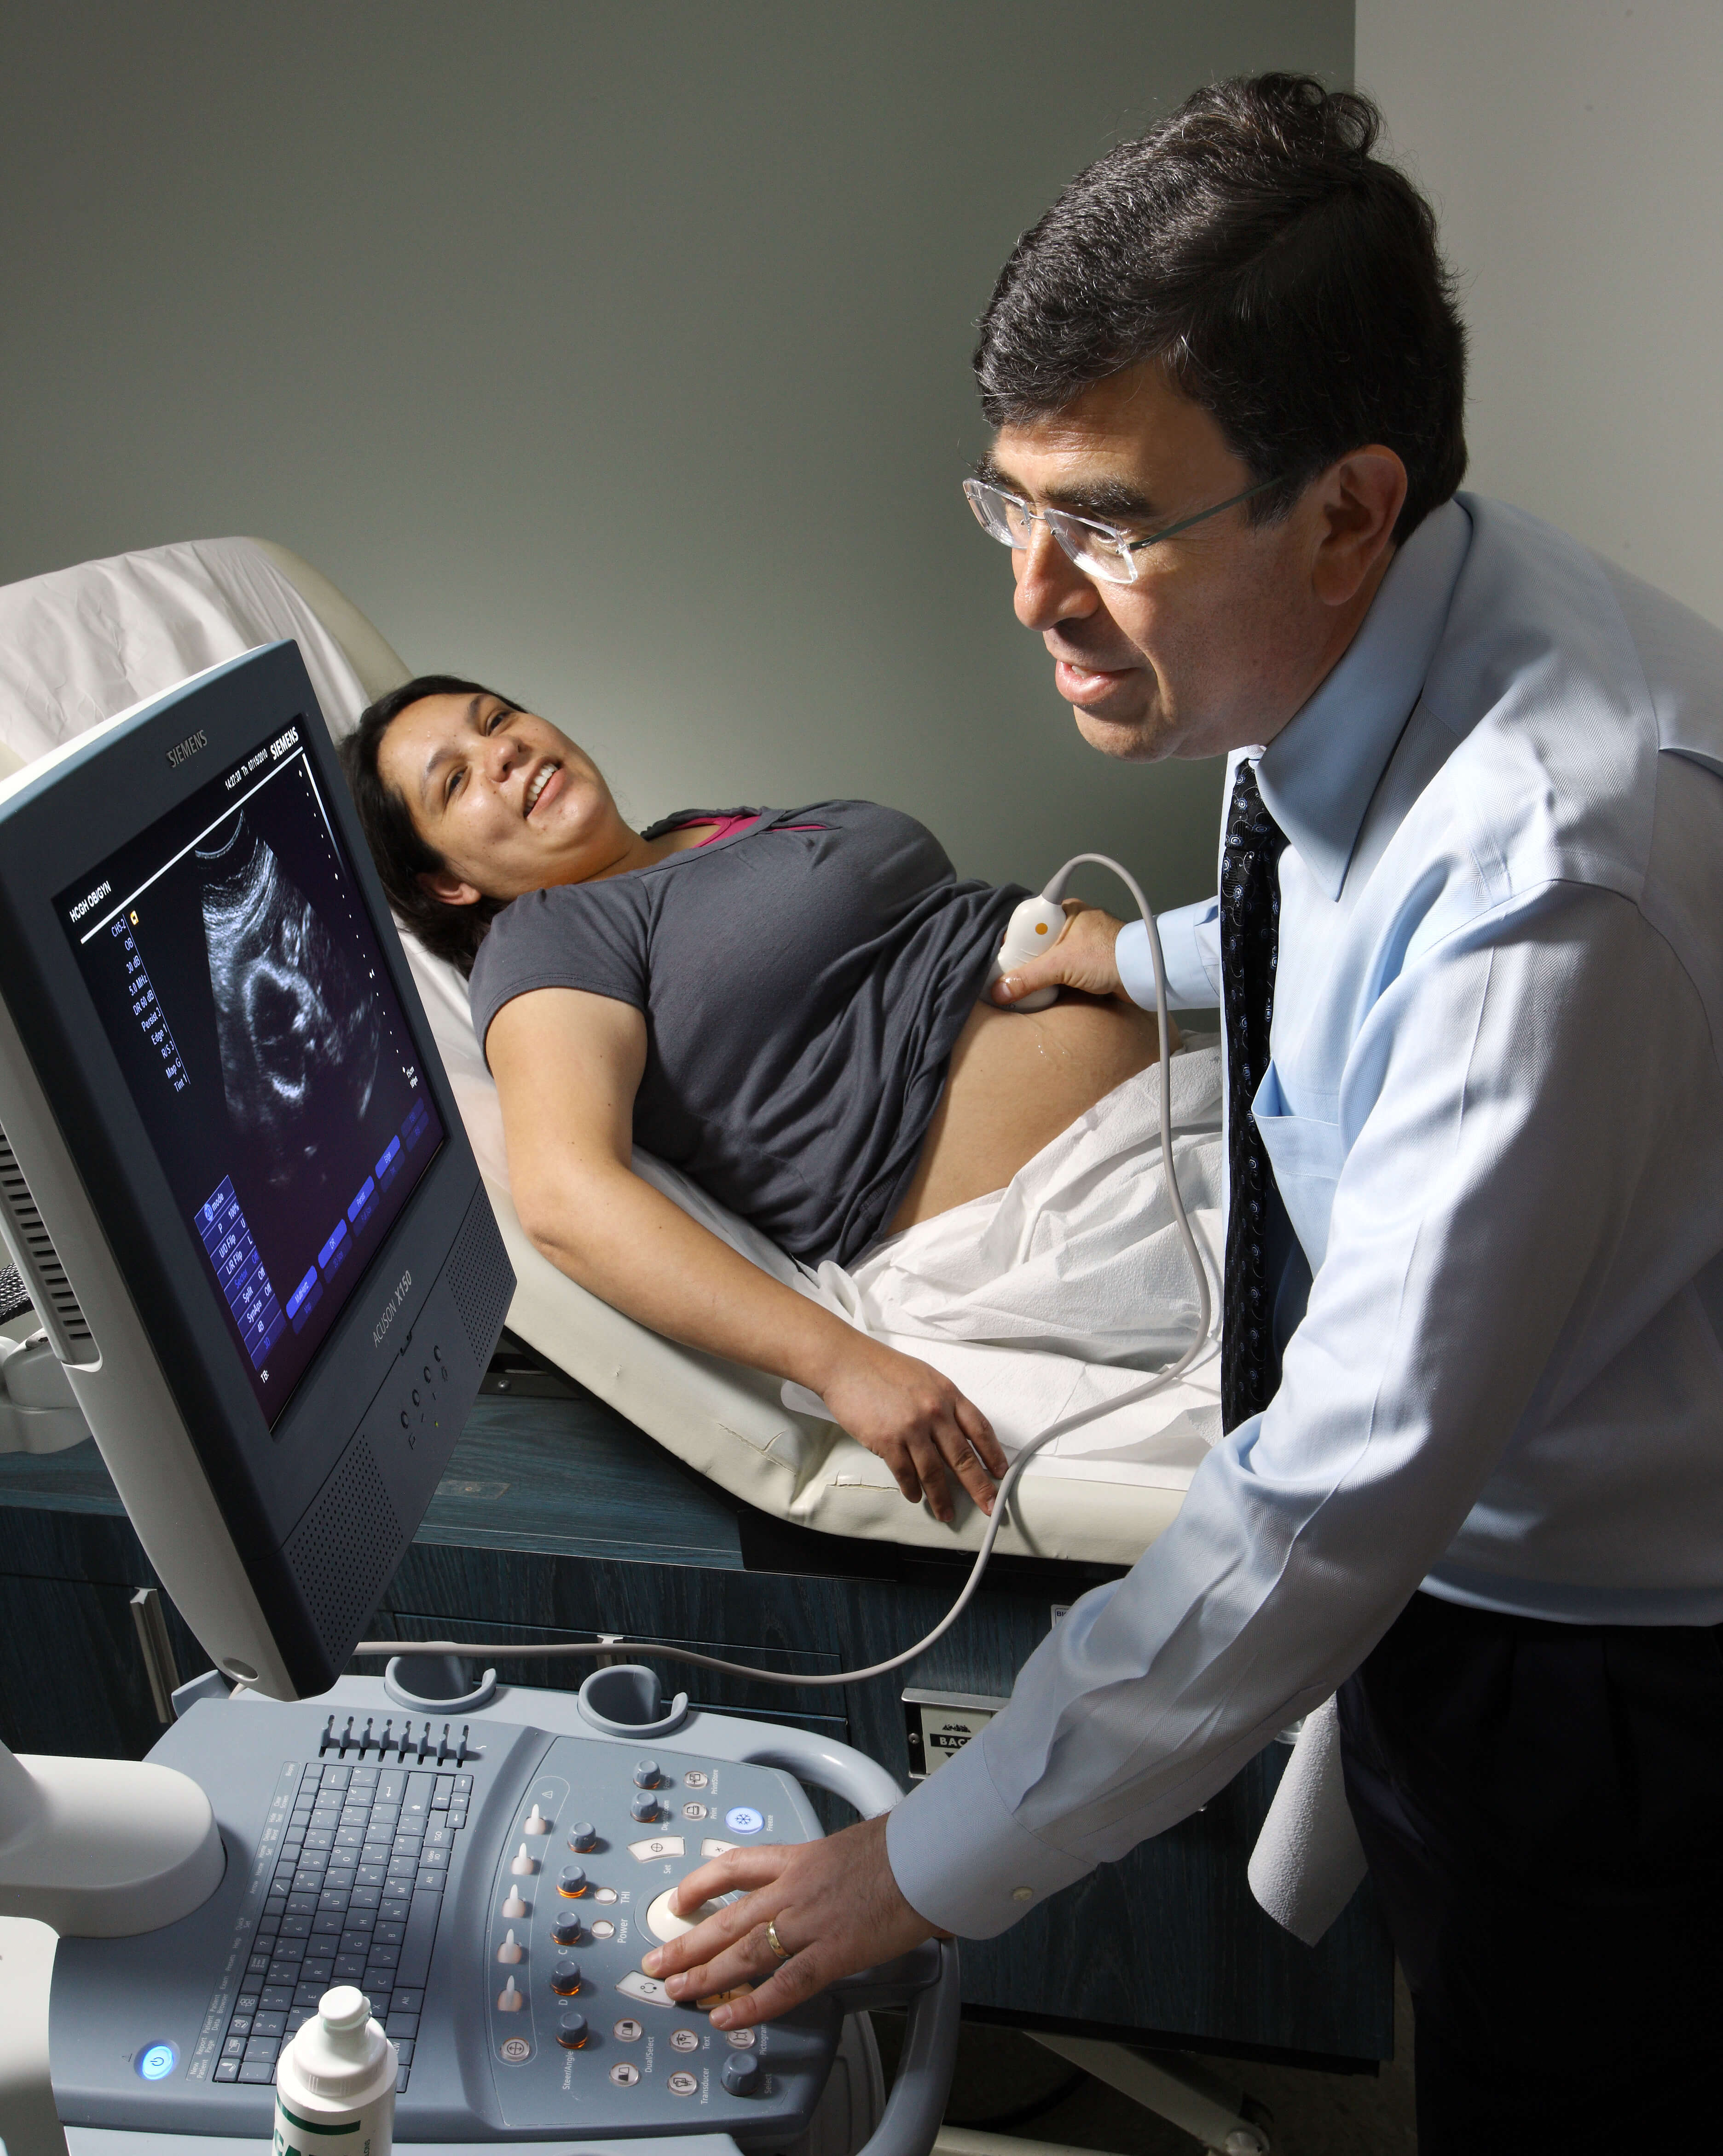 Dr. Kokkinakos performing an obstetric ultrasound on a new mom in an exam room with her parner looking on in the background